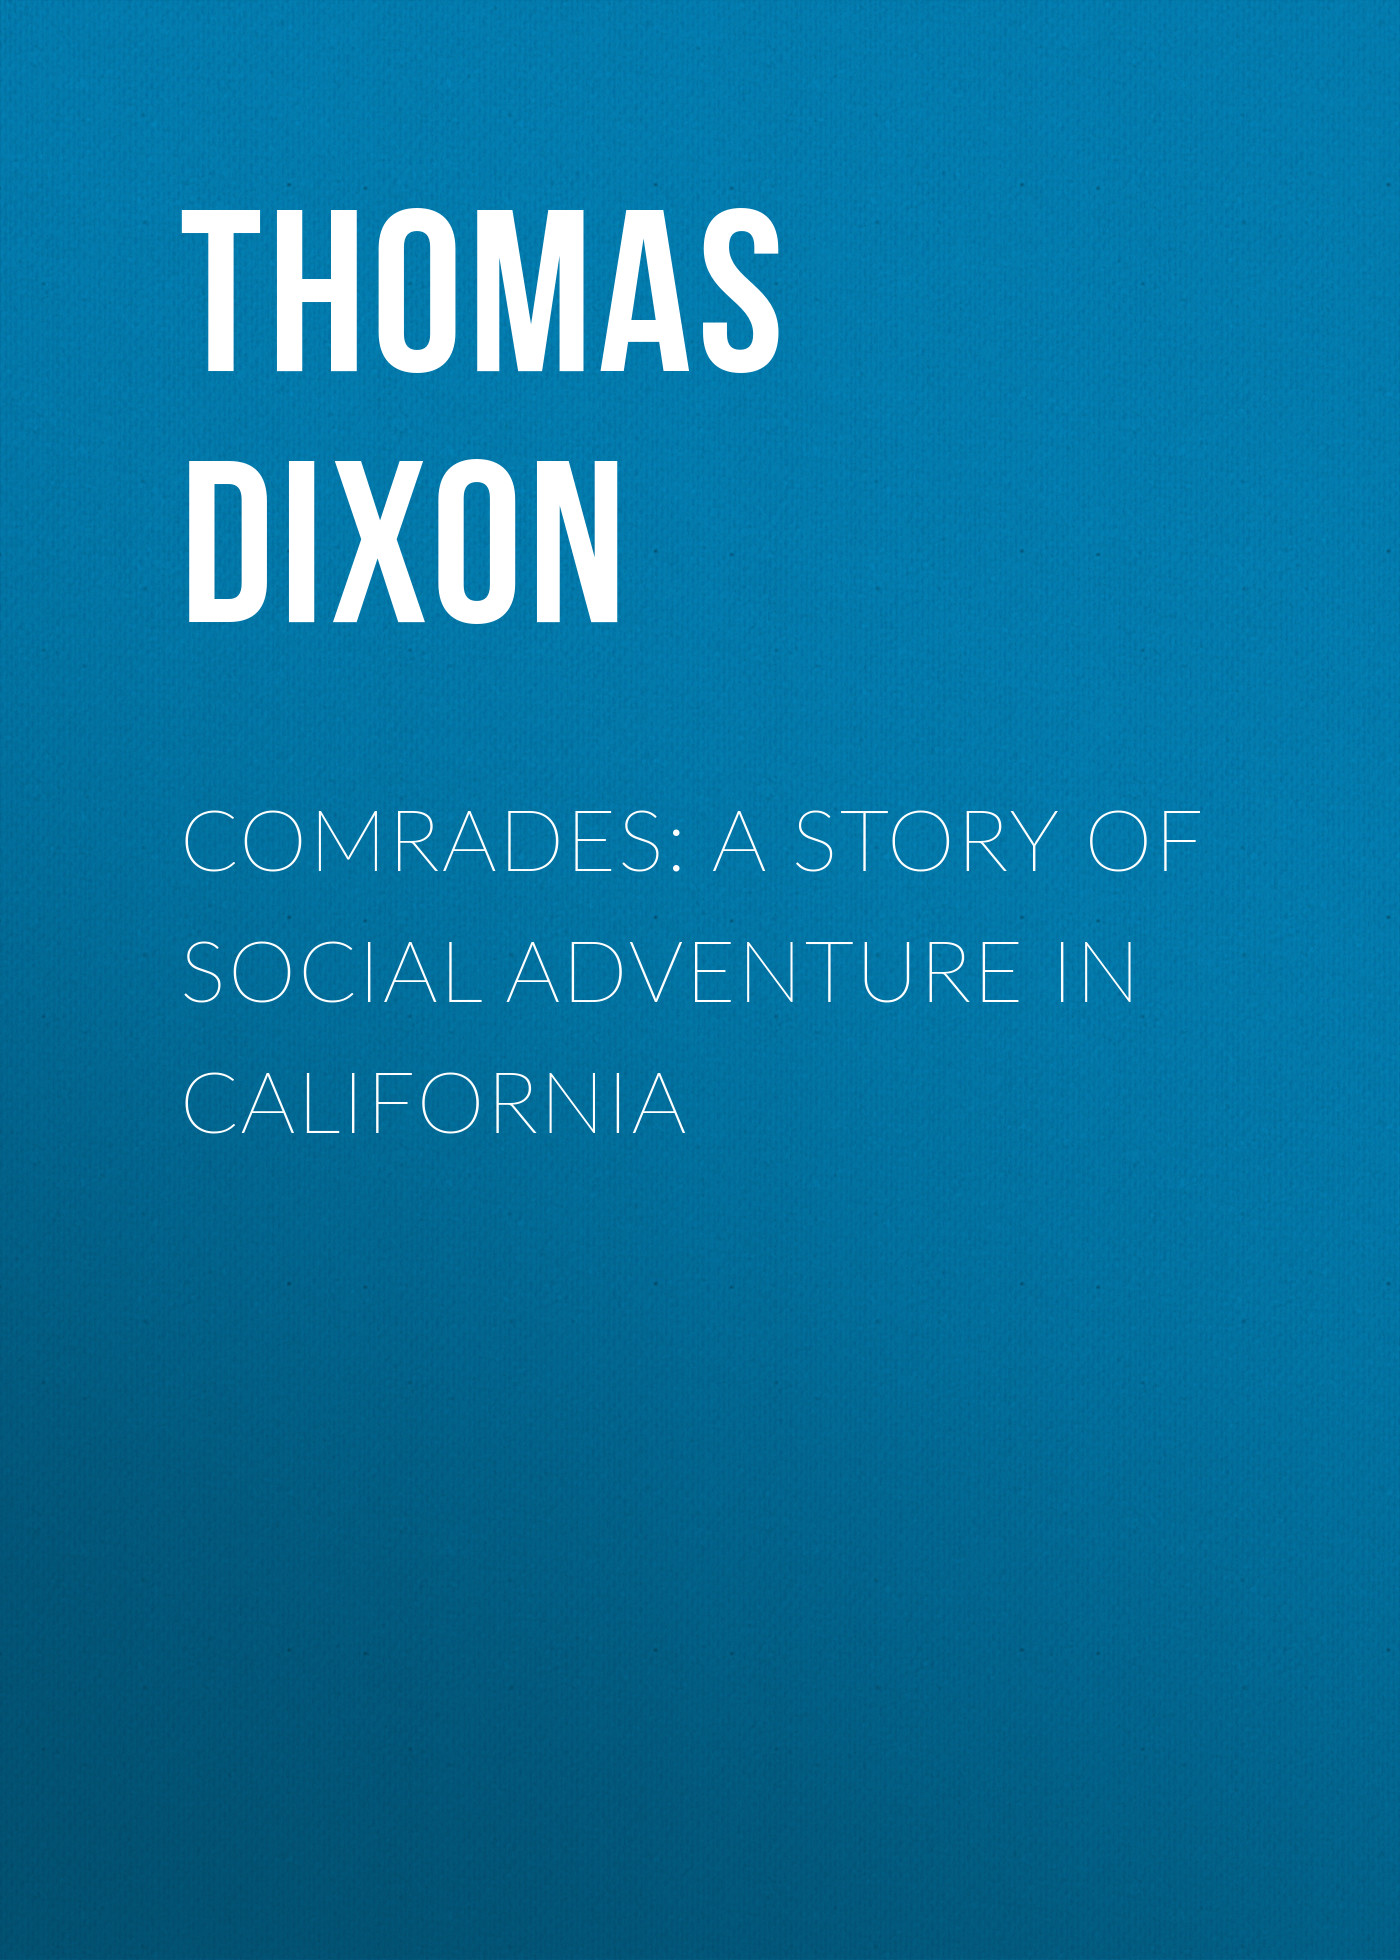 Thomas Dixon Comrades: A Story of Social Adventure in California thomas hewitt mcmanus crackpot social recipes